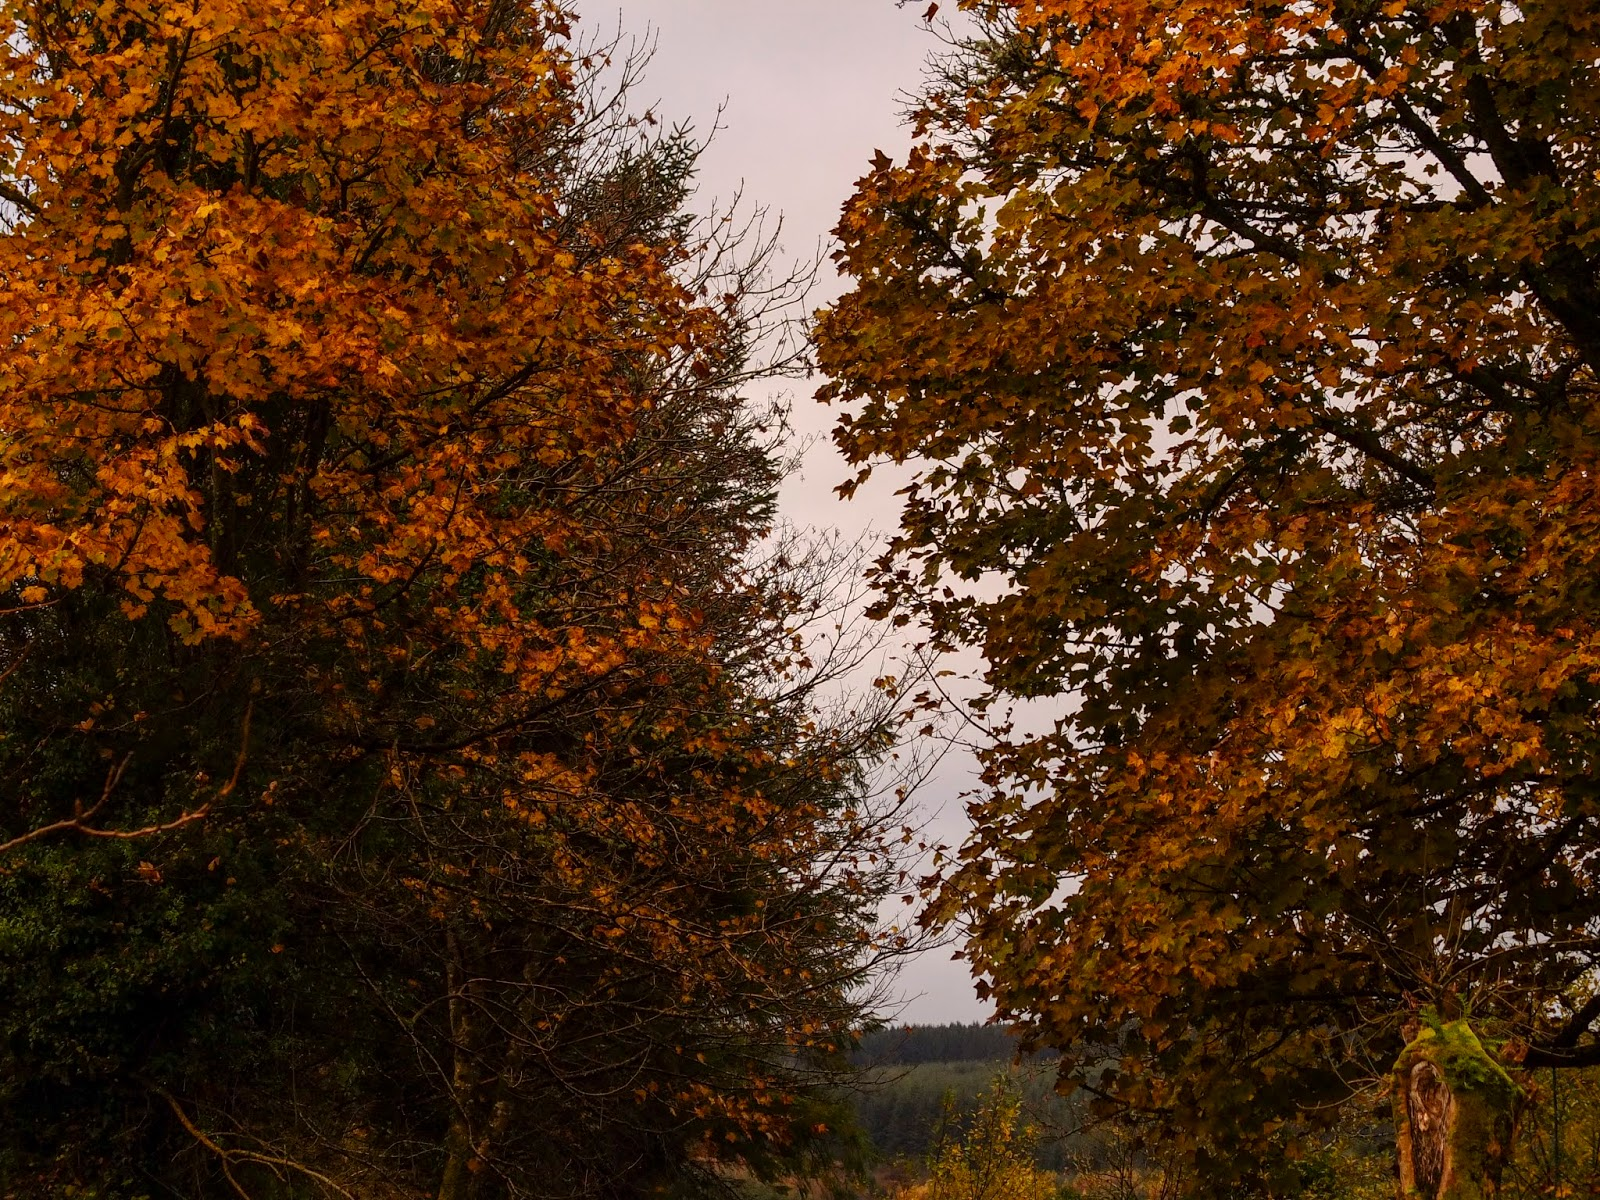 Golden brown Maple tree leaves in North County Cork.